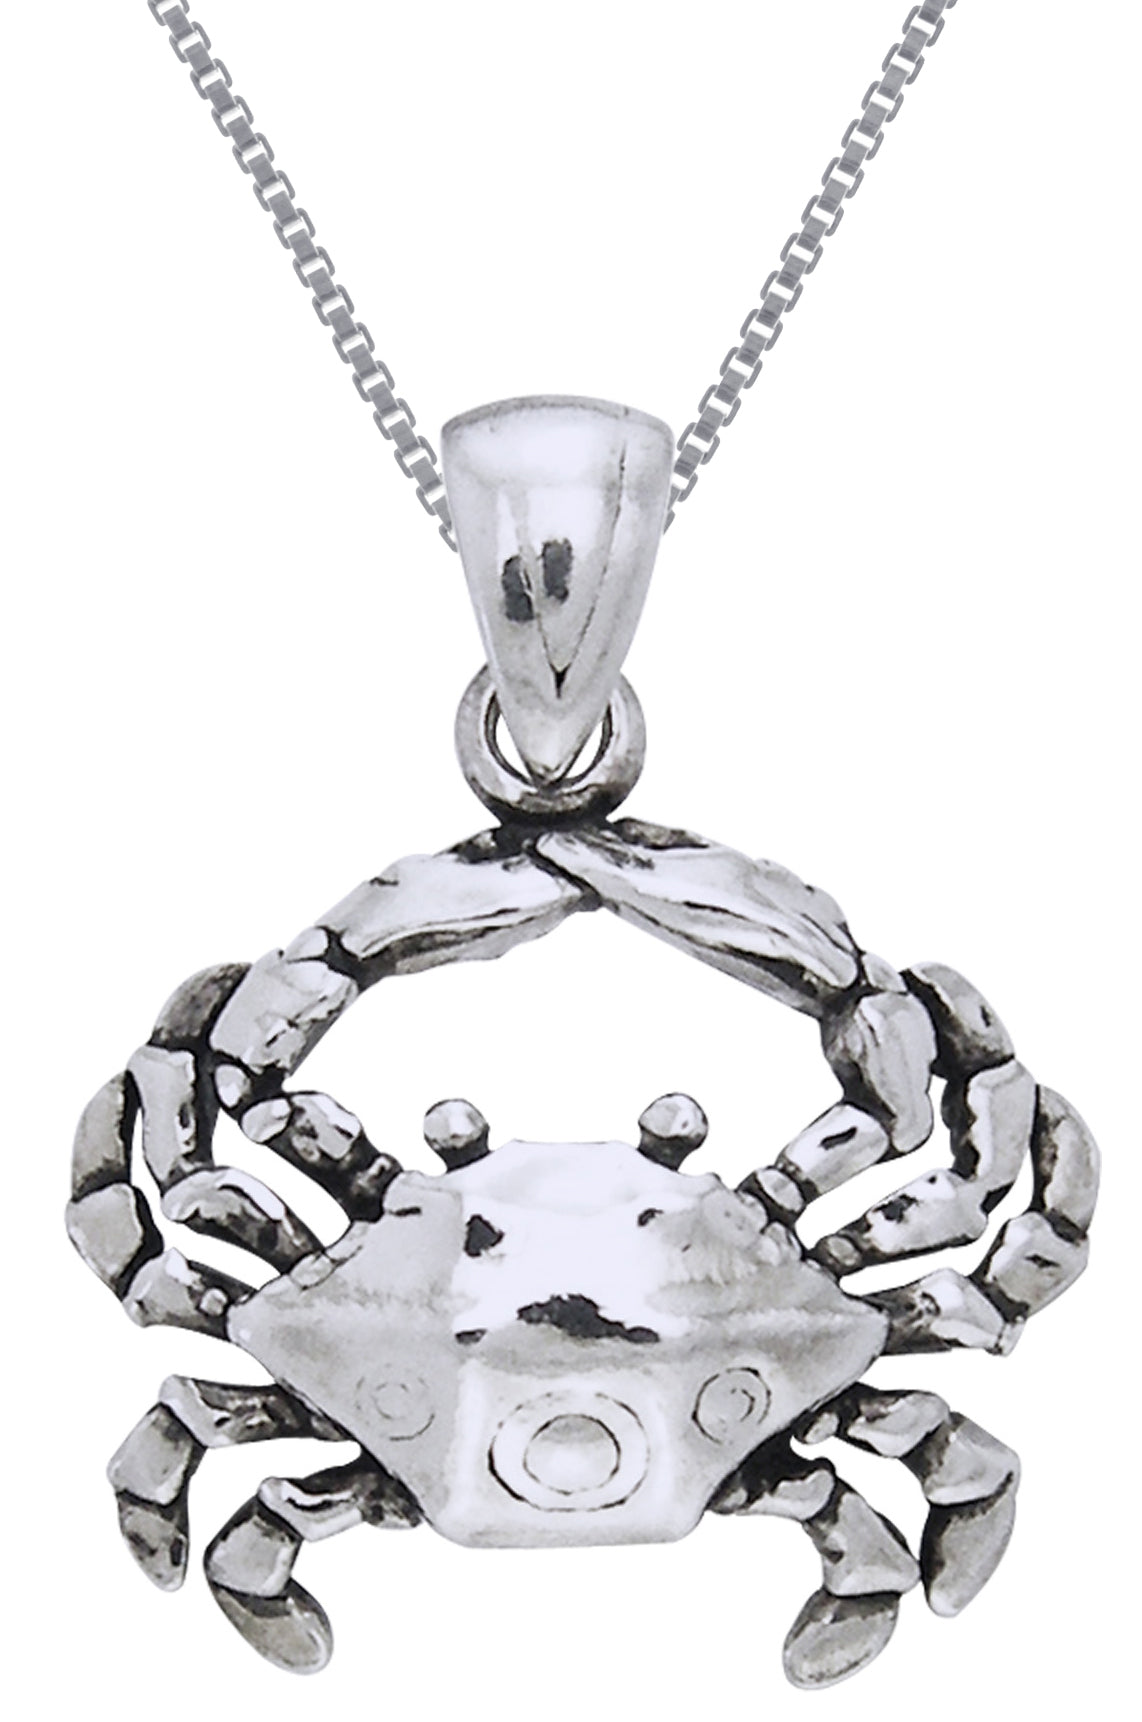 Jewelry Trends Sterling Silver Beach Crab Pendant on 18 Inch Box Chain Necklace